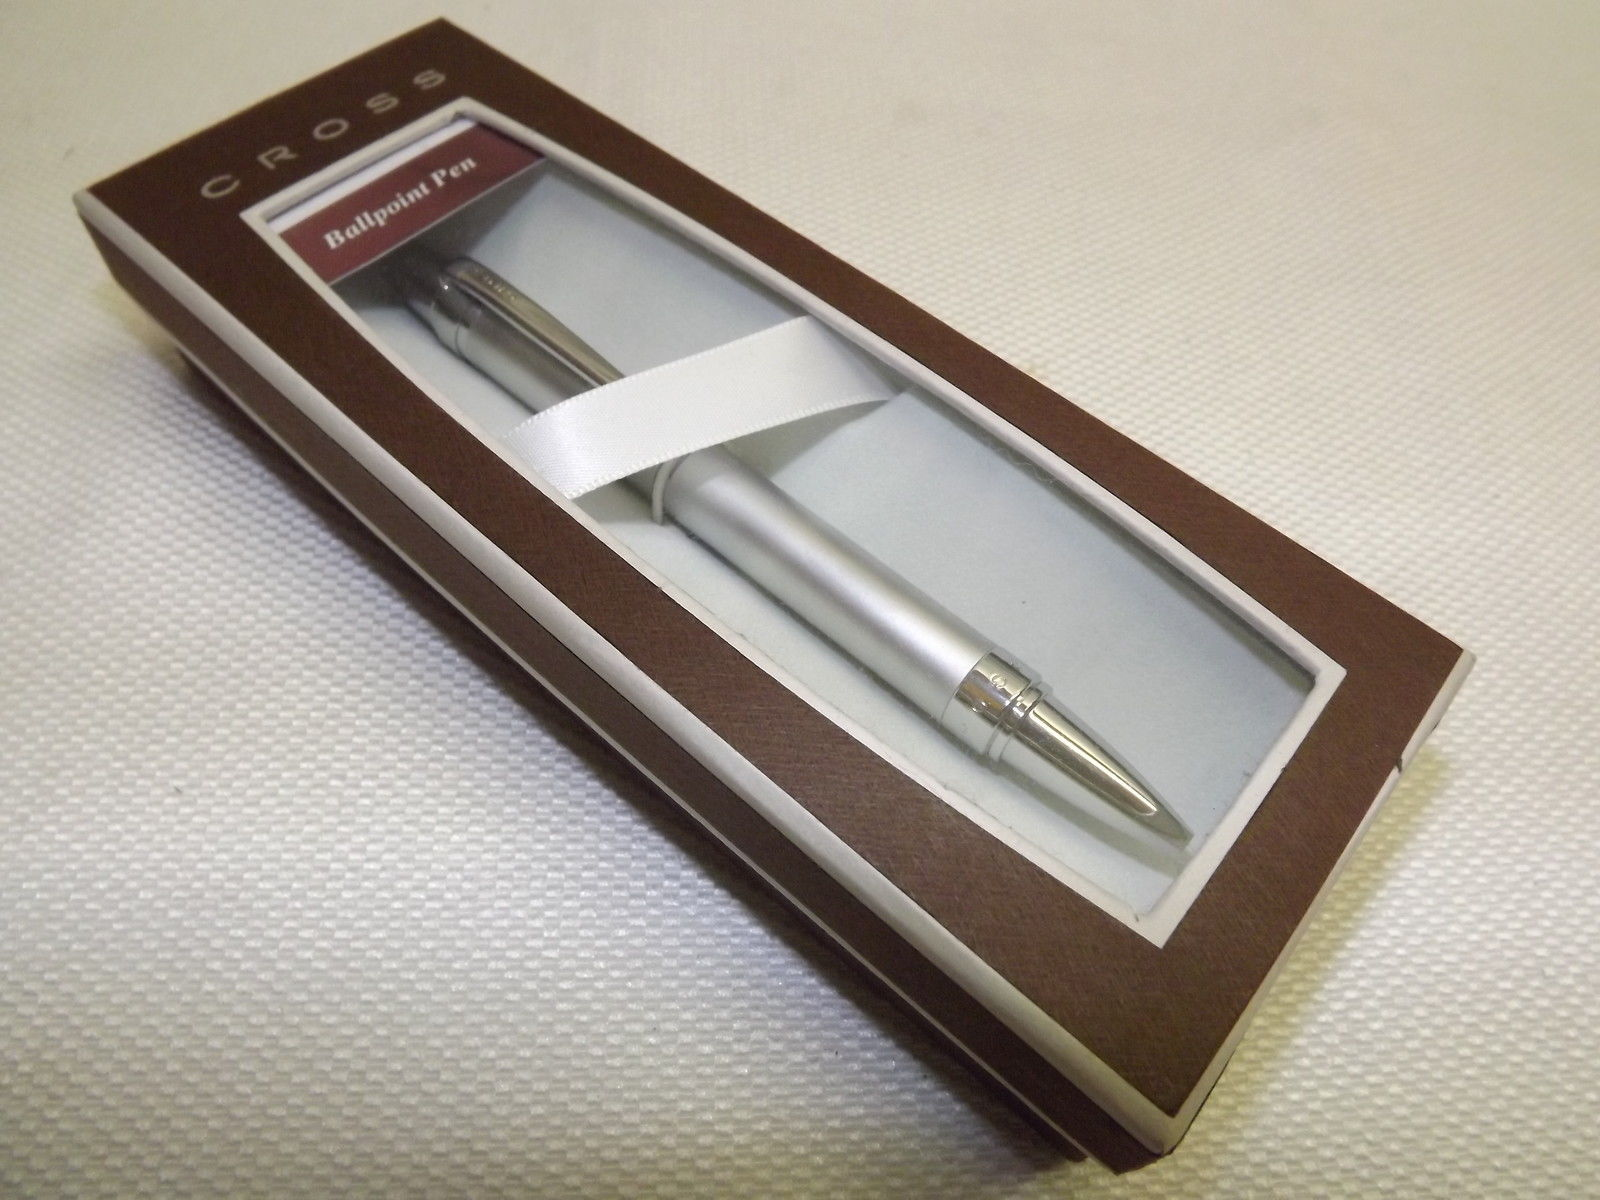 NEW CROSS BRUSHED CHROME BALLPOINT PEN WITH POLISHED CHROME APPOINTMENTS